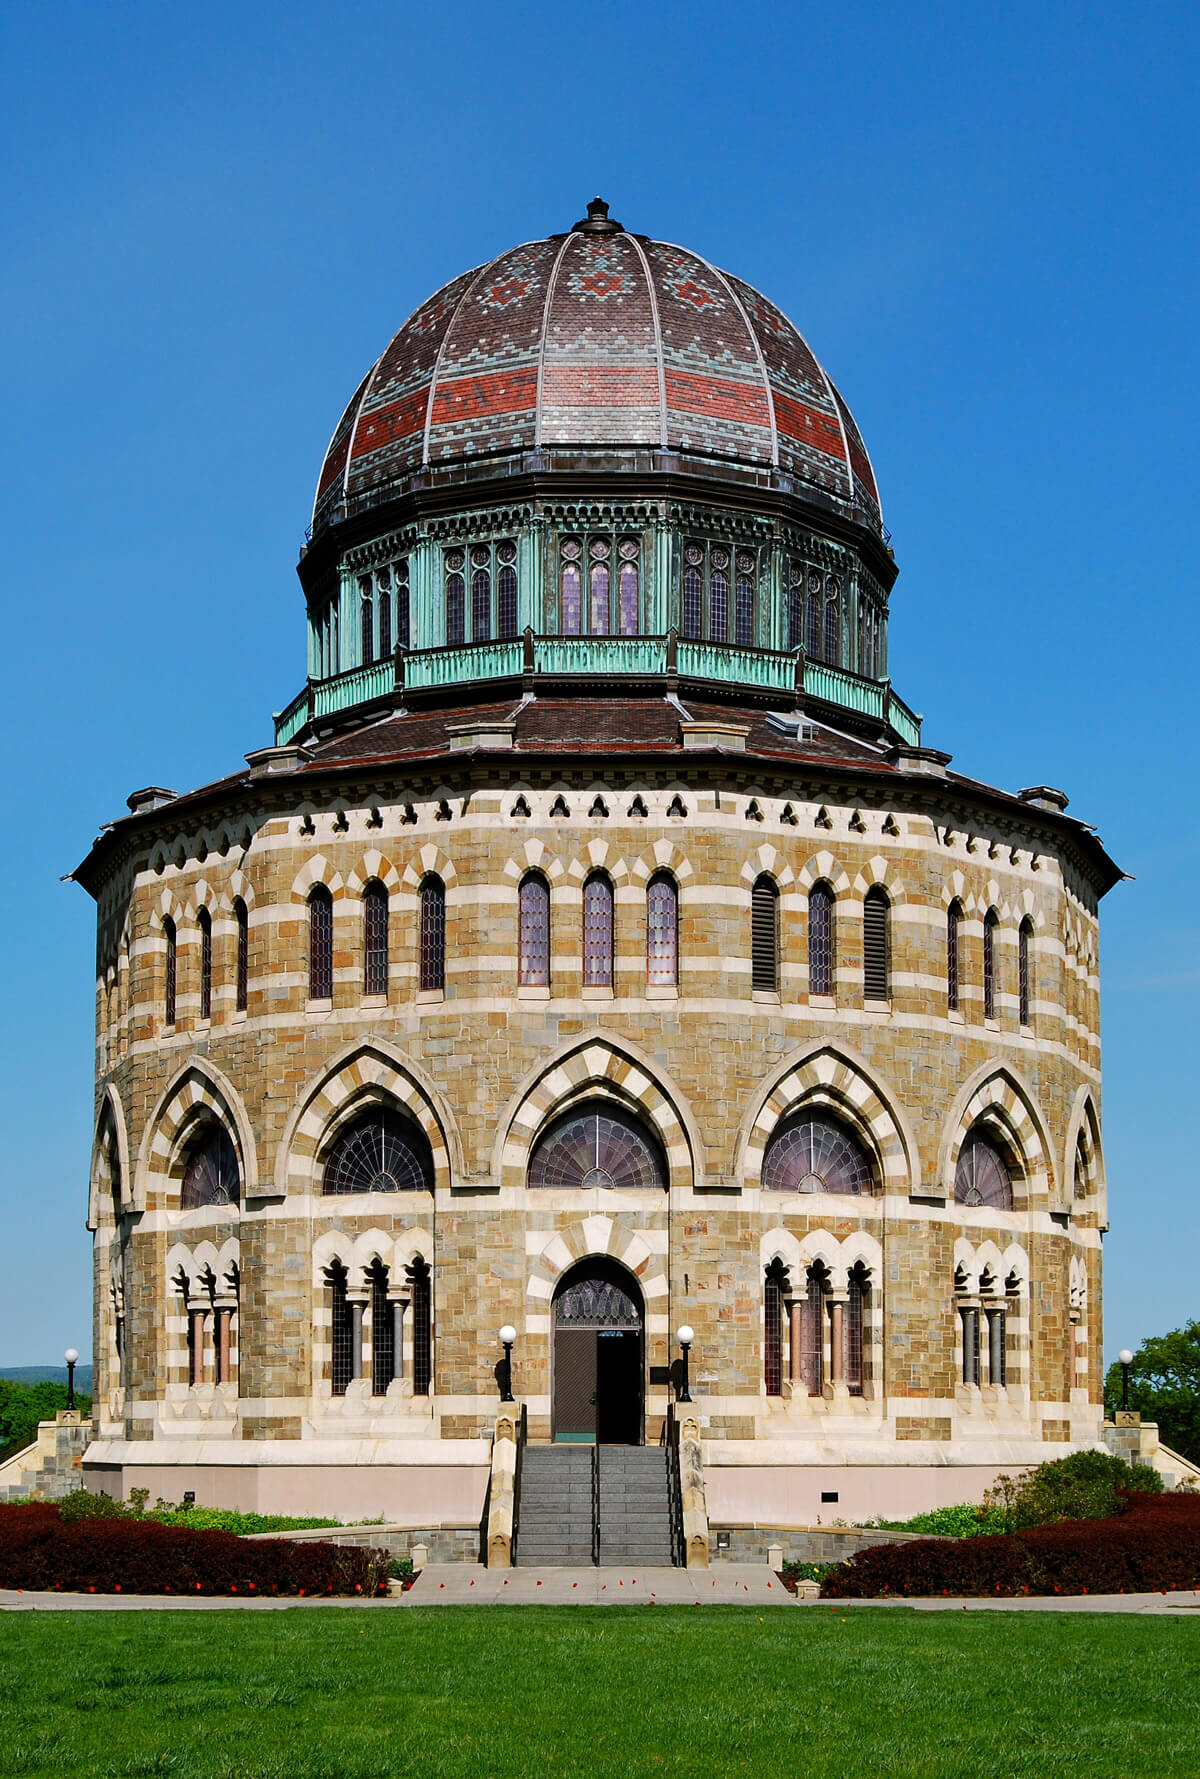 Frontal view of Nott Memorial at Union College, characterized by it's rounded stone shape, detailing around arced windows, and its red dome roof.